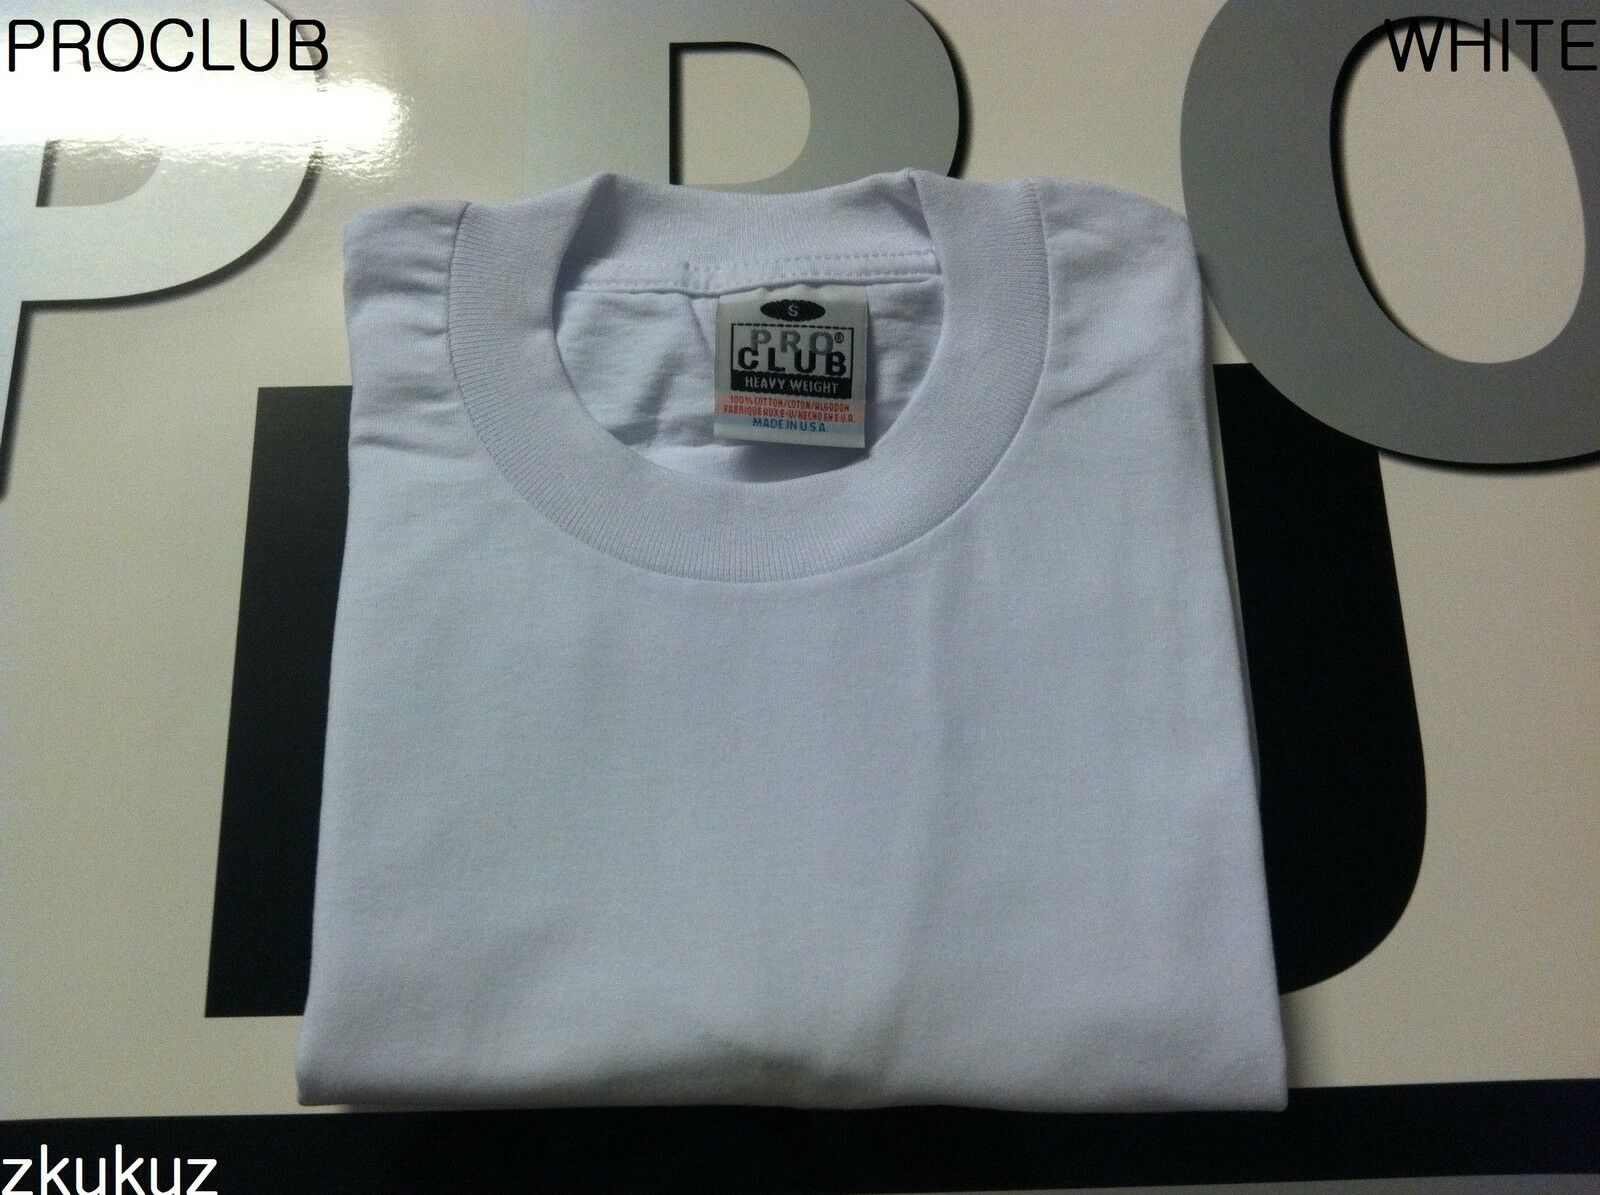 12 NEW PROCLUB HEAVY WEIGHT T-SHIRT WHITE PLAIN PRO CLUB BLANK 2XL 12PC